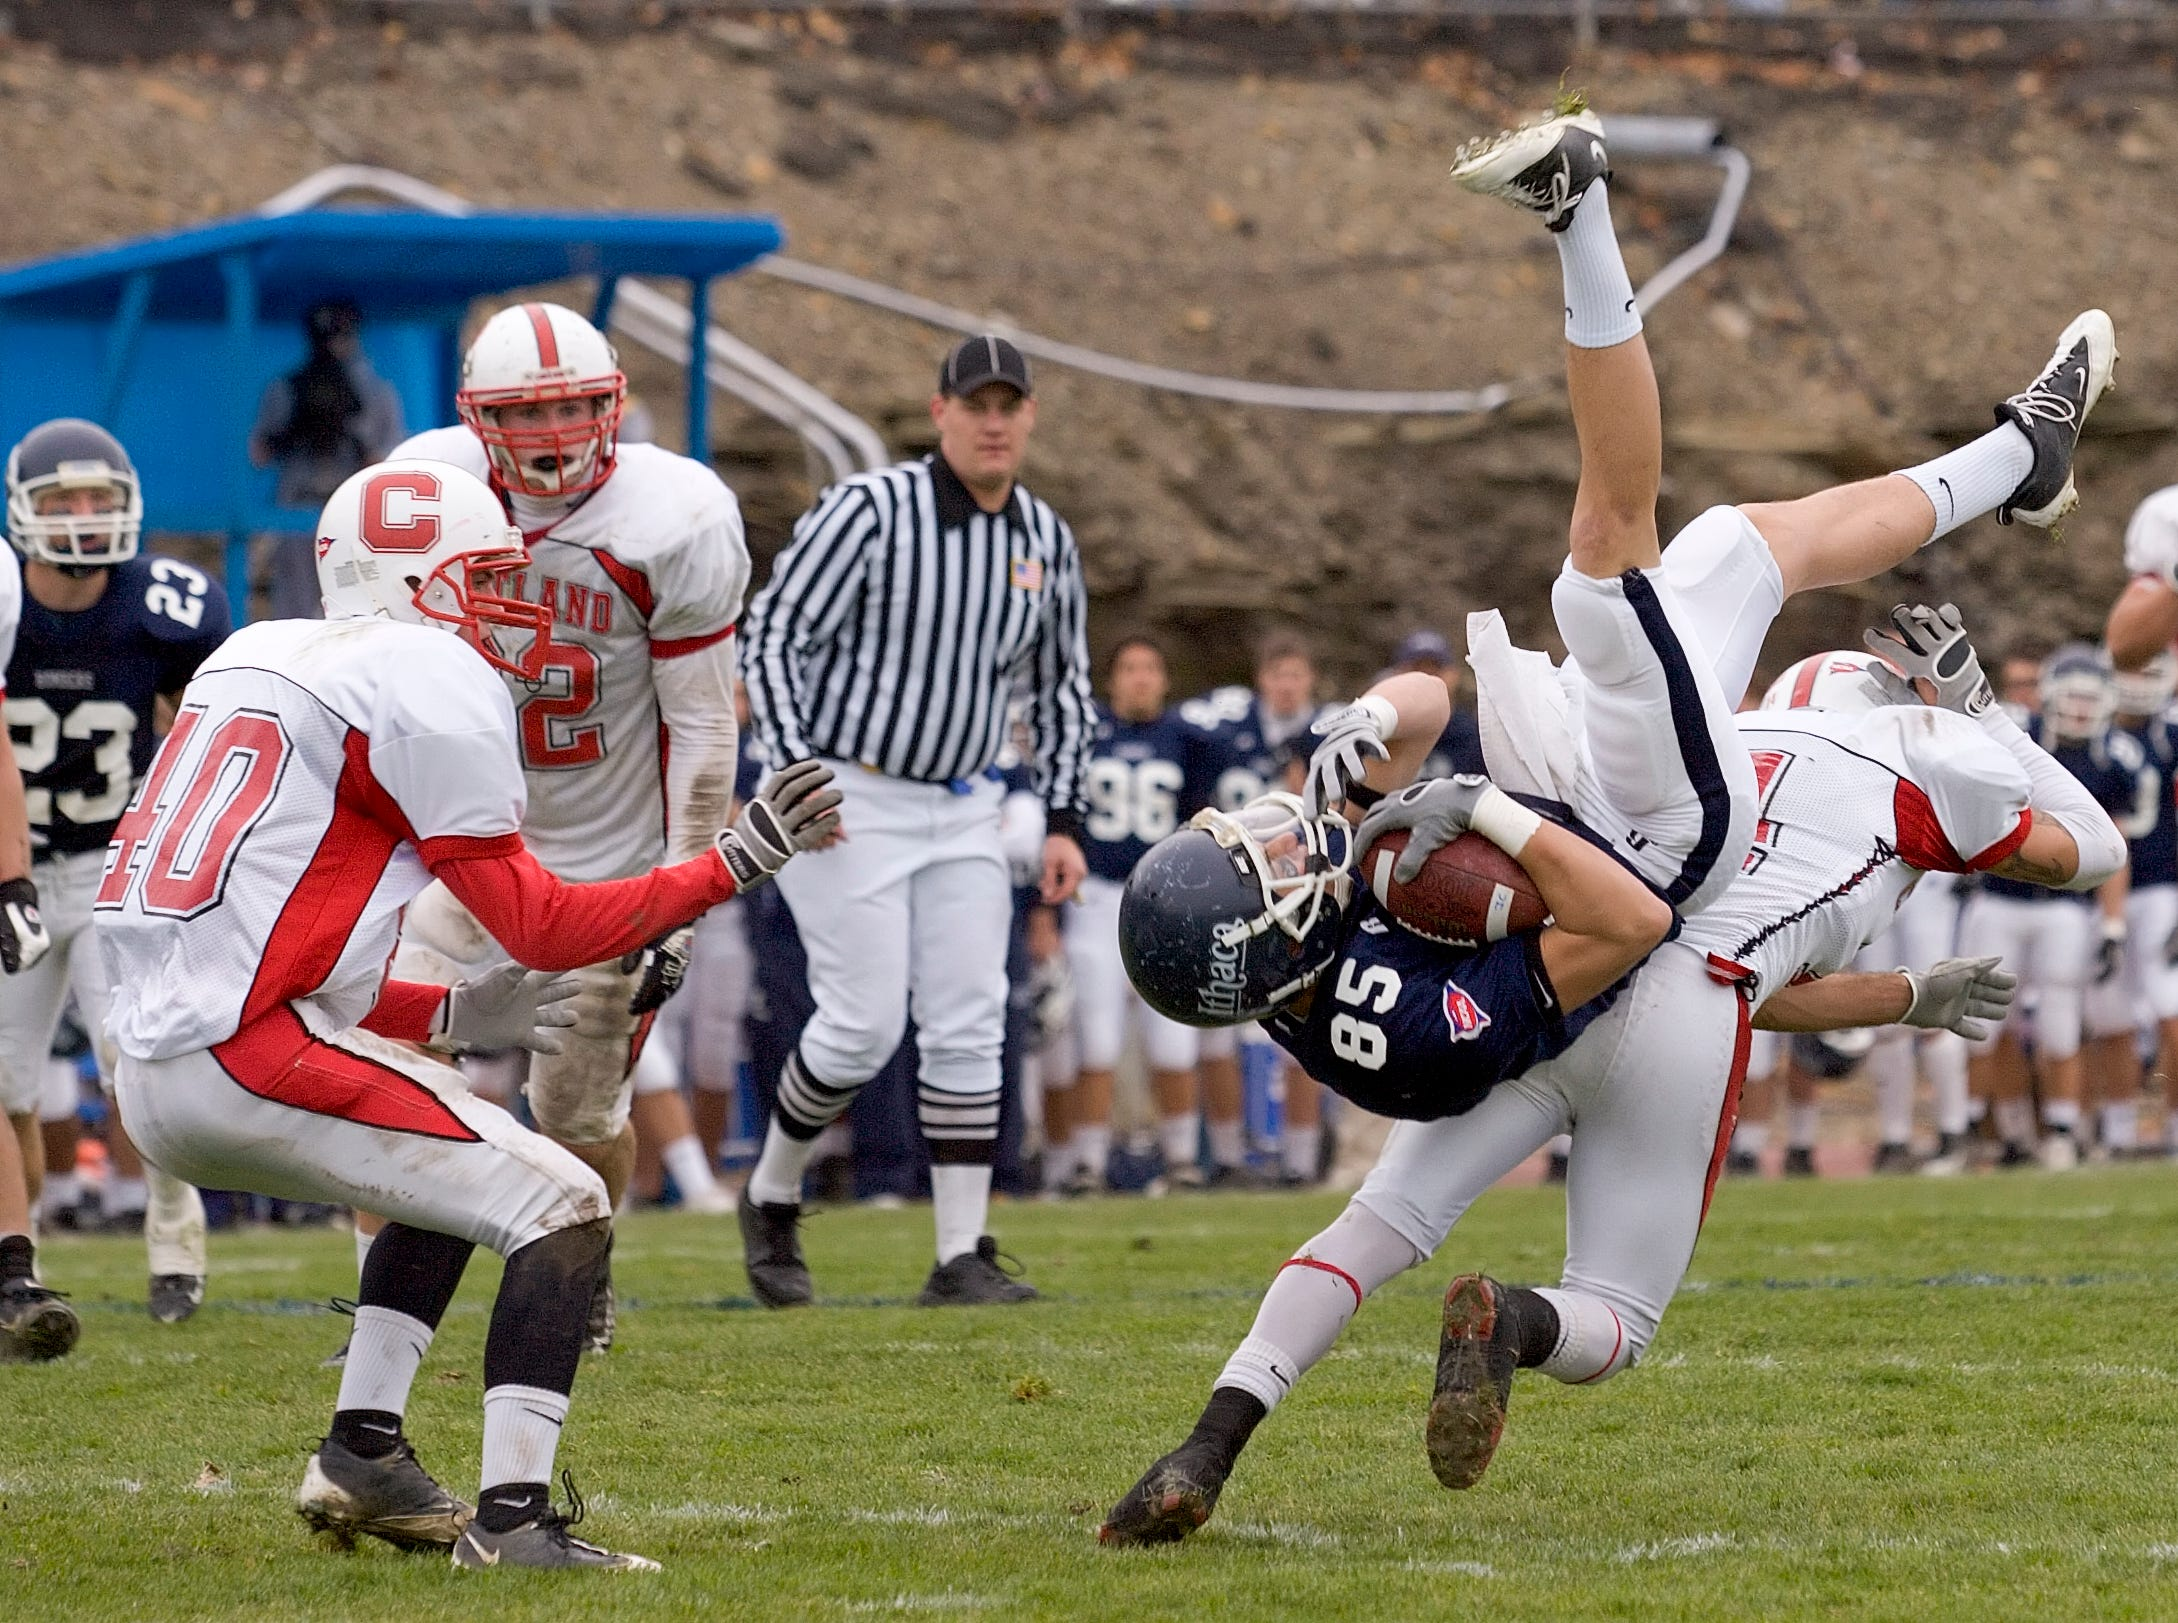 2009: Cortland's Phil Bossman, left watches as Ithaca's Joseph Ingrao hangs on for a pass completion as D. J. Romano upsets him after a leaping catch Saturday afternoon during the Cortaca Jug game.